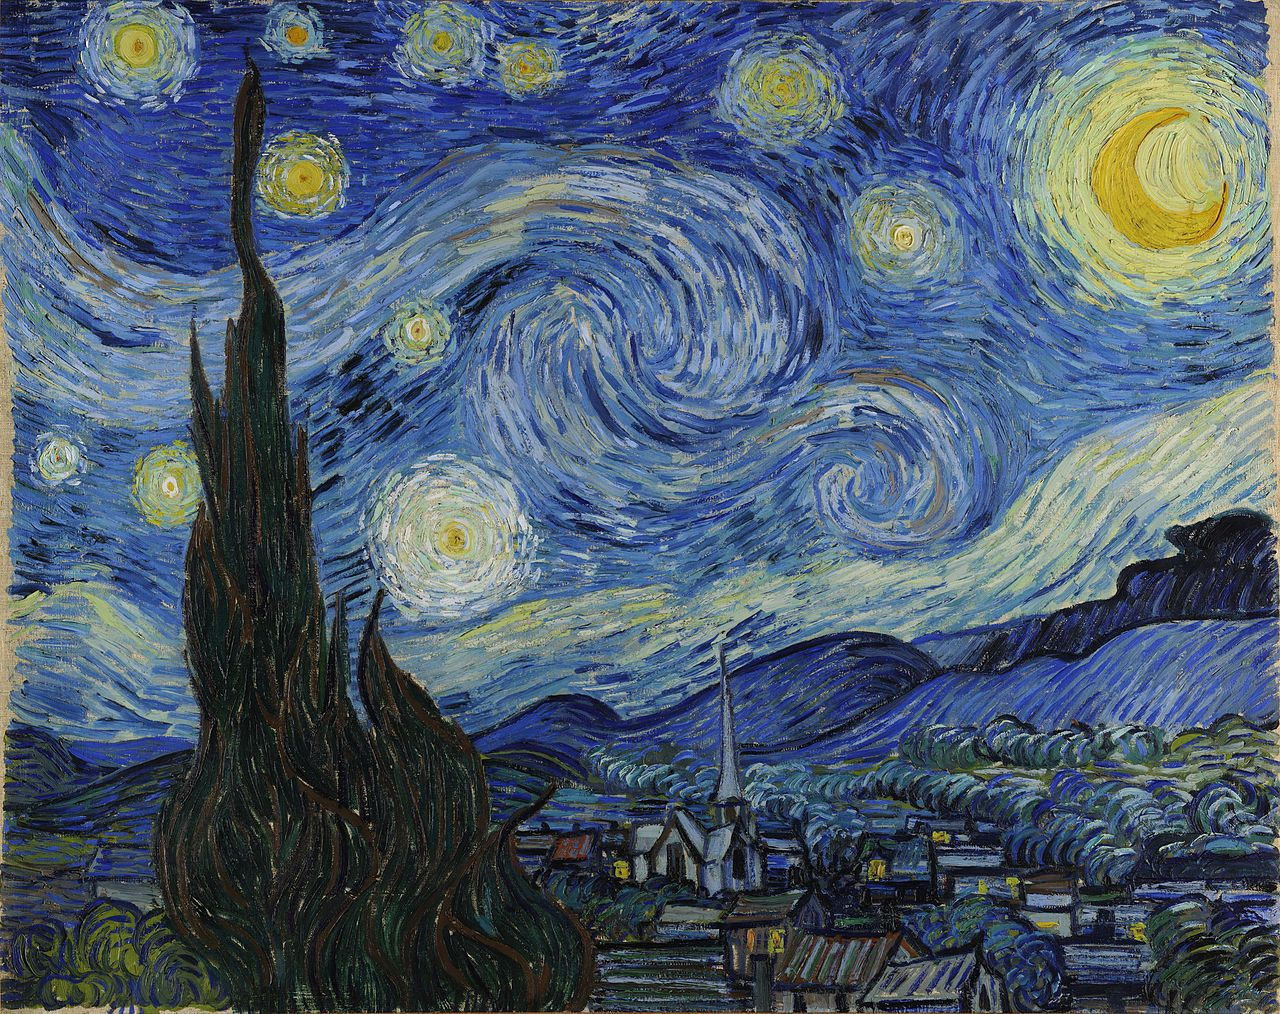 asymmetrical-design-van-gogh-starry-night